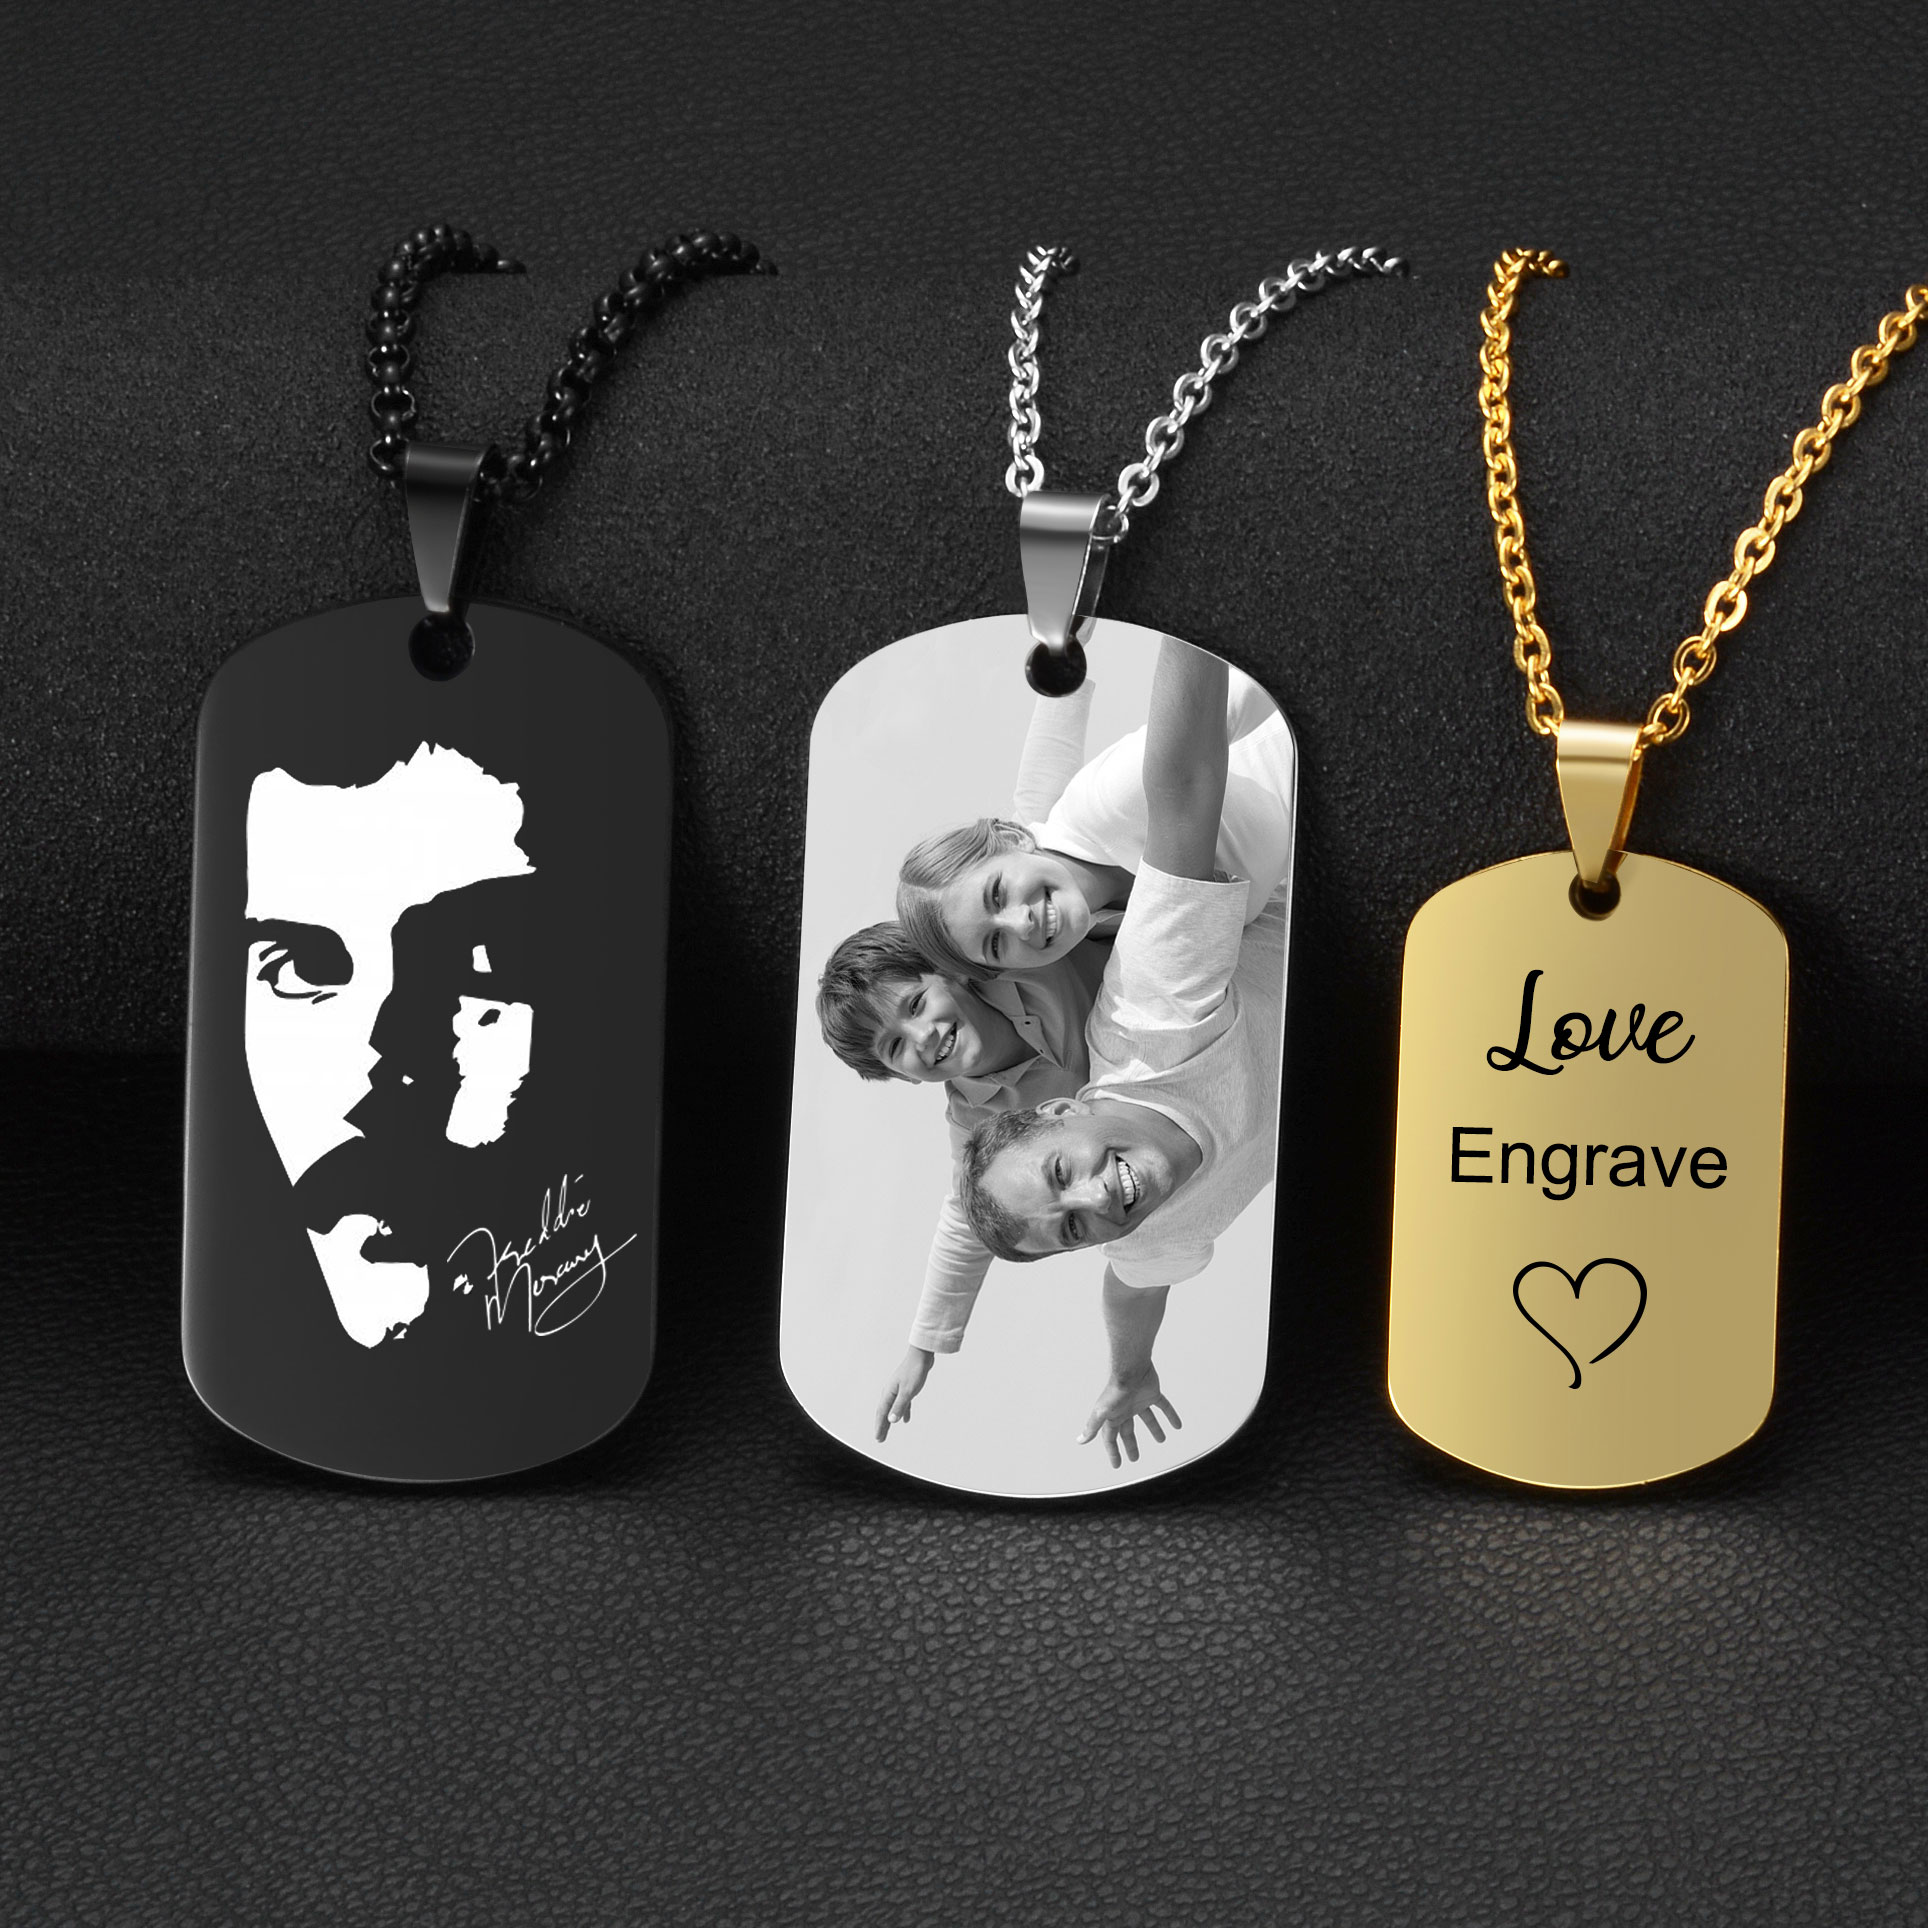 personalized id army tags necklace custom engraved stainless steel dog tag engraved customized dog tag name pendant men jewelry Stainless Steel Custom Engraved Pendant Necklace Dog Army Tag Necklaces Personalized Name ID Memorial Photo Pendants Jewelry DIY